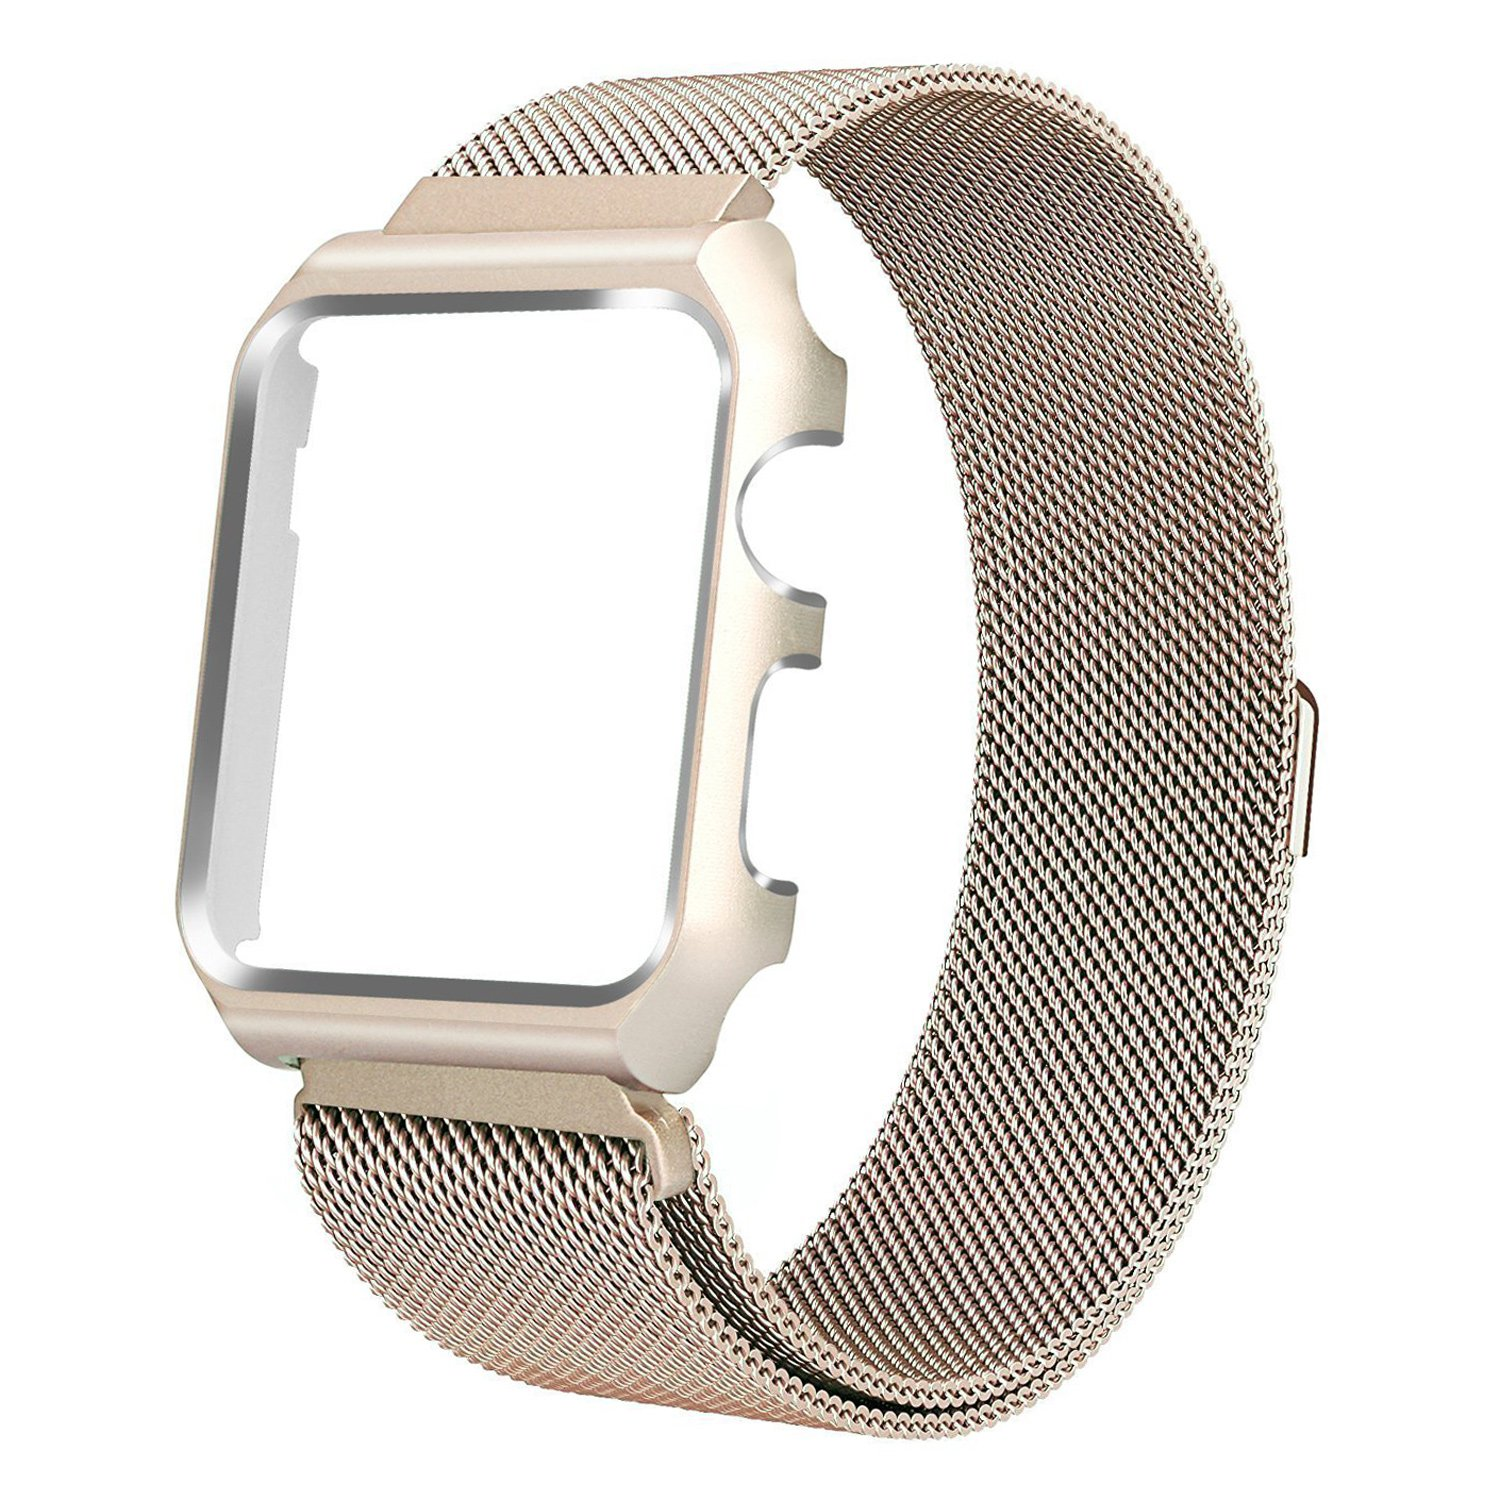 HUASIRU Apple Watch Band 38mm, Stainless Steel Milanese Loop Replacement Band with Metal Case Cover for Apple Watch Series 3, Series 2, Series 1 (Champagne Gold)